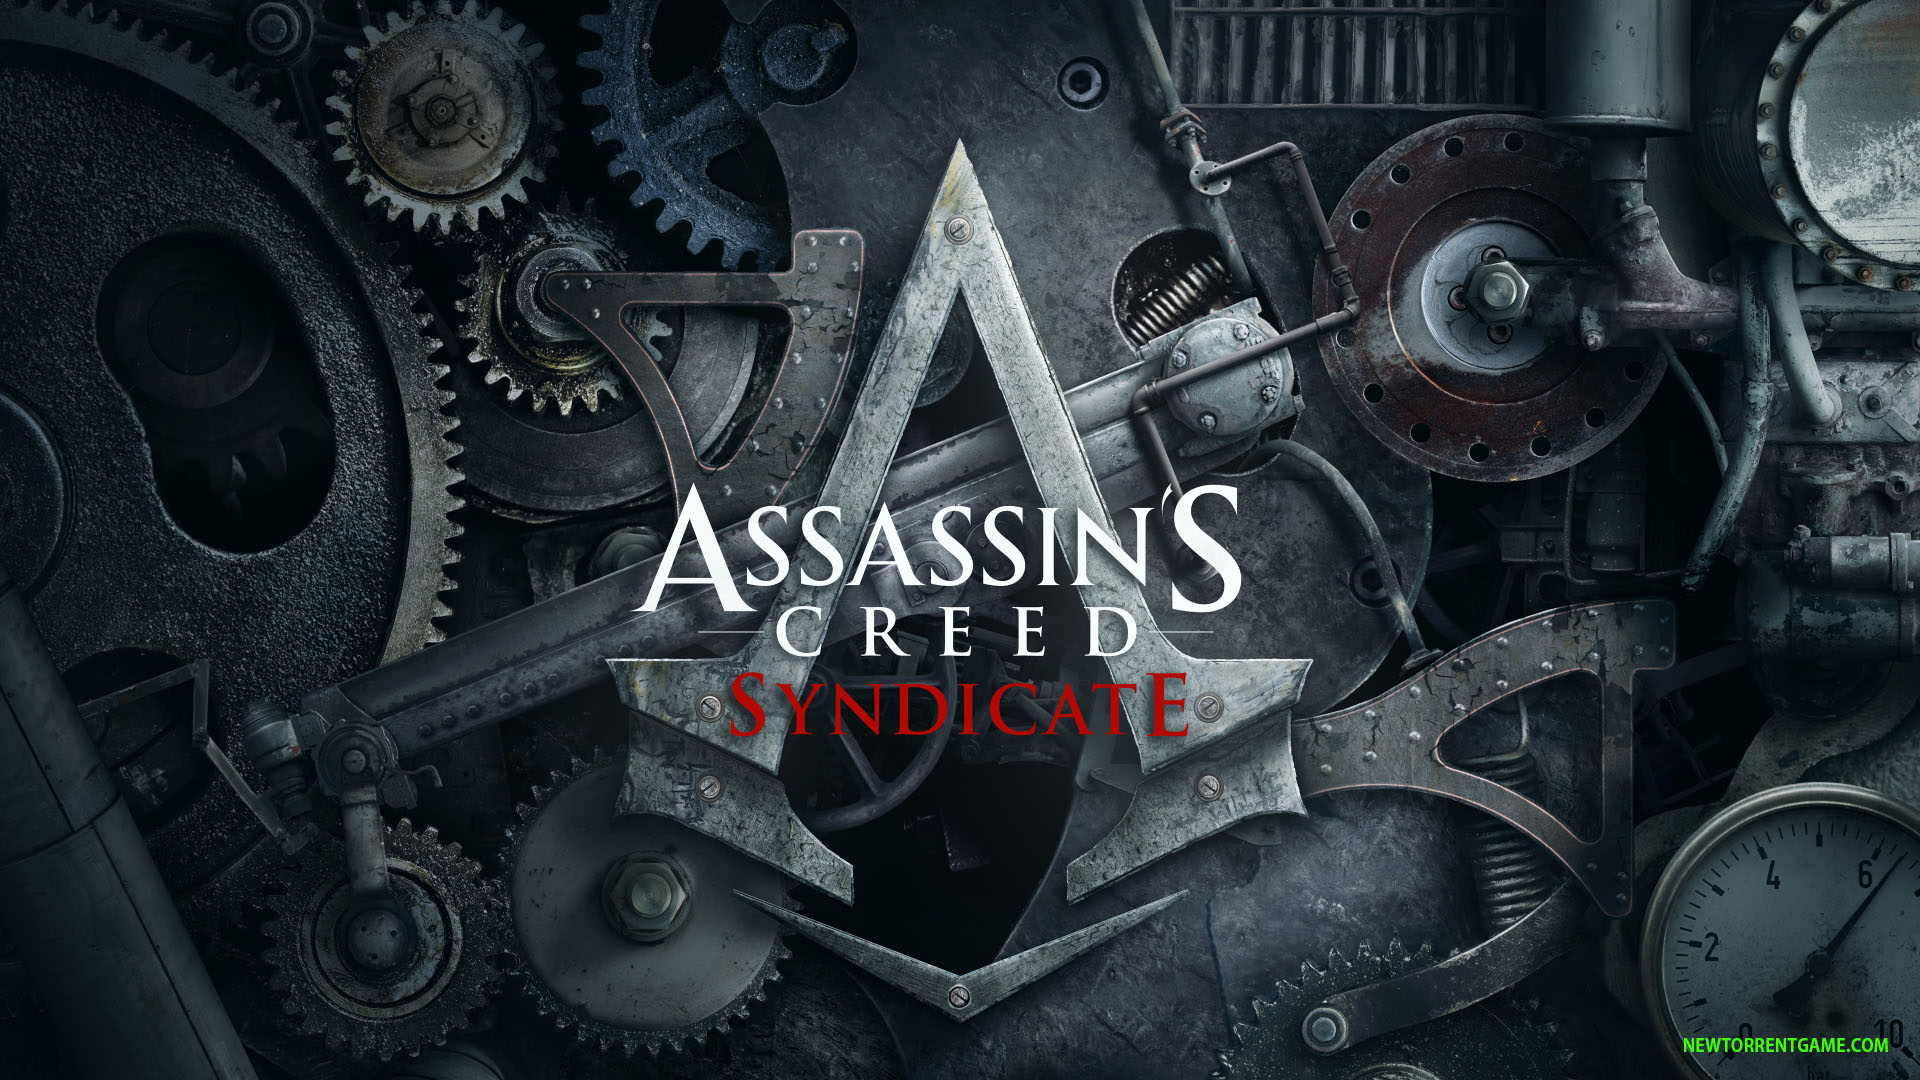 AssassinsCreed Syndicate torrent download